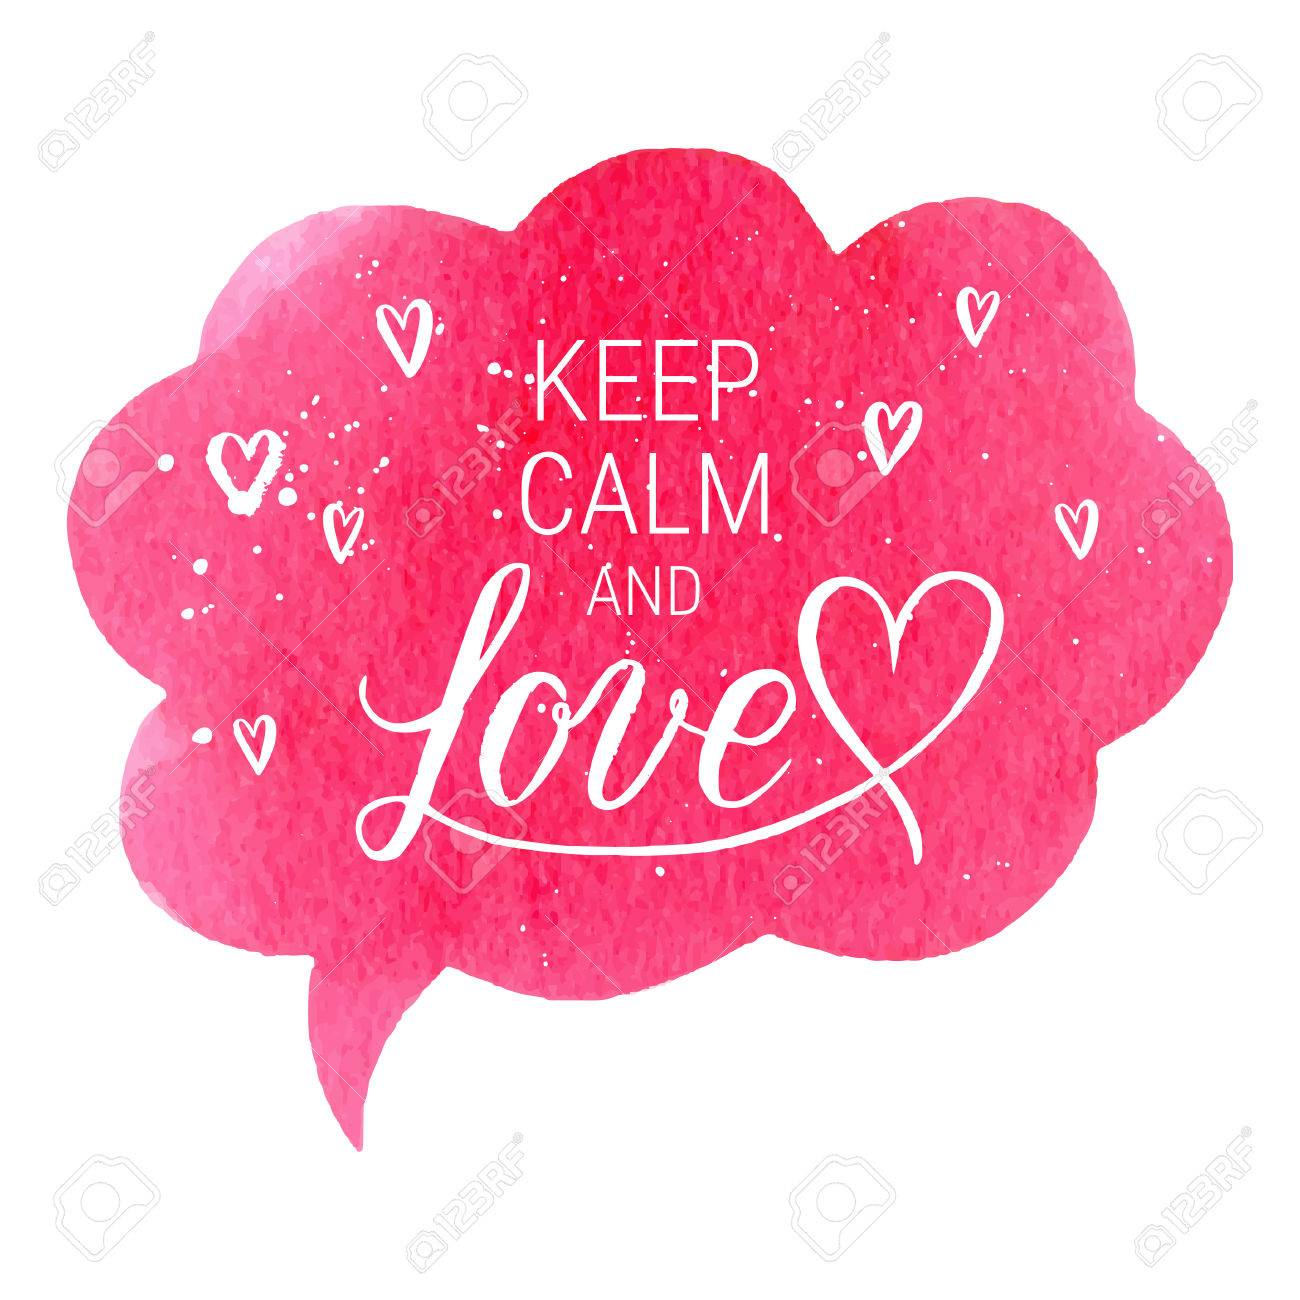 Keep Calm And Love Greeting Card Poster With Pink Watercolor